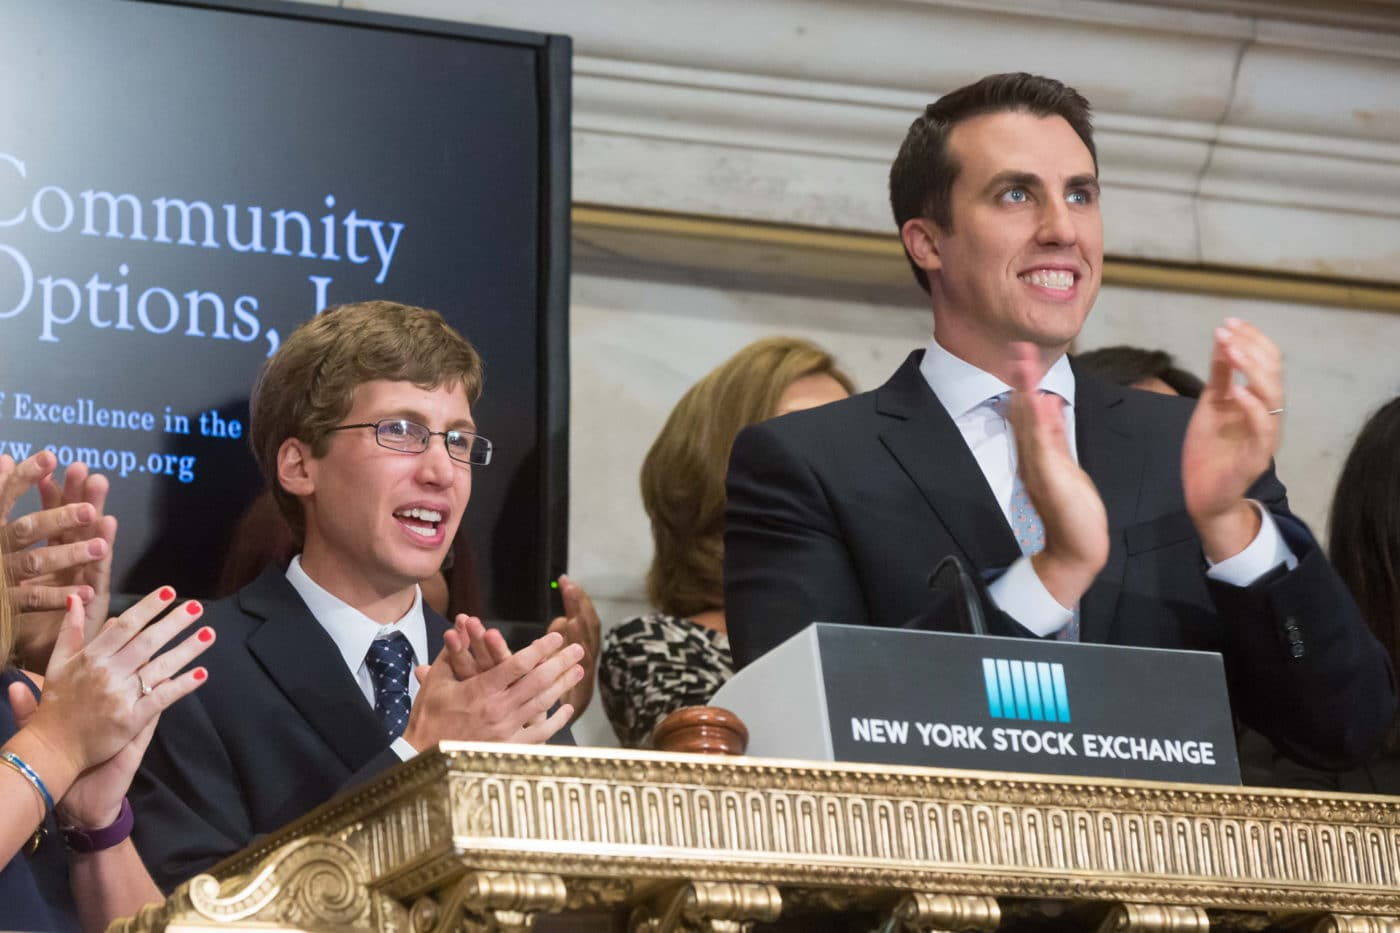 On August 15, 2016, Community Options, rang the Closing Bell at the New York Stock Exchange.